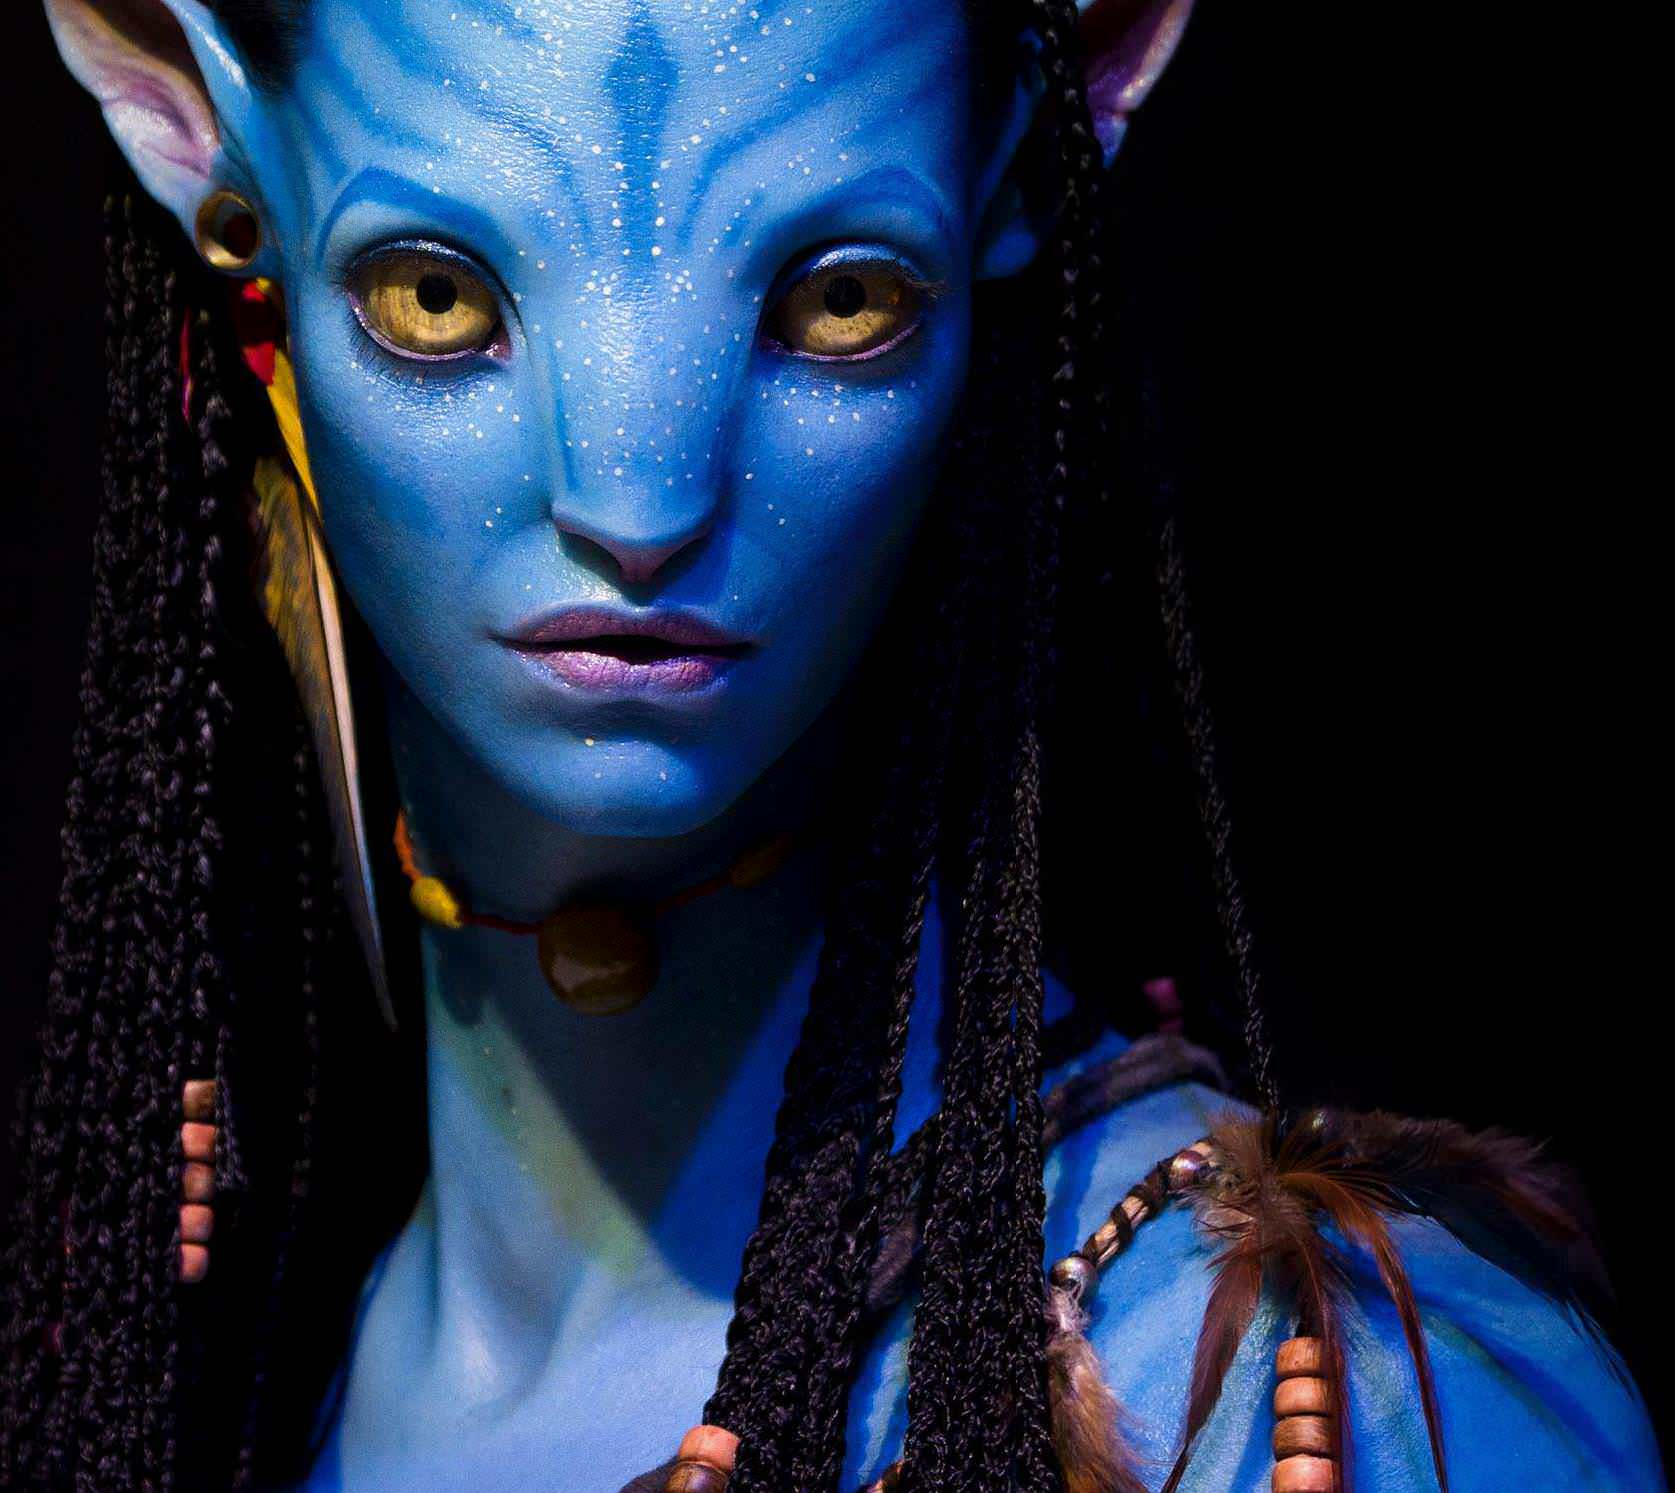 Avatar 3: 'Avatar' Sequels Now Scheduled To Start In December 2020